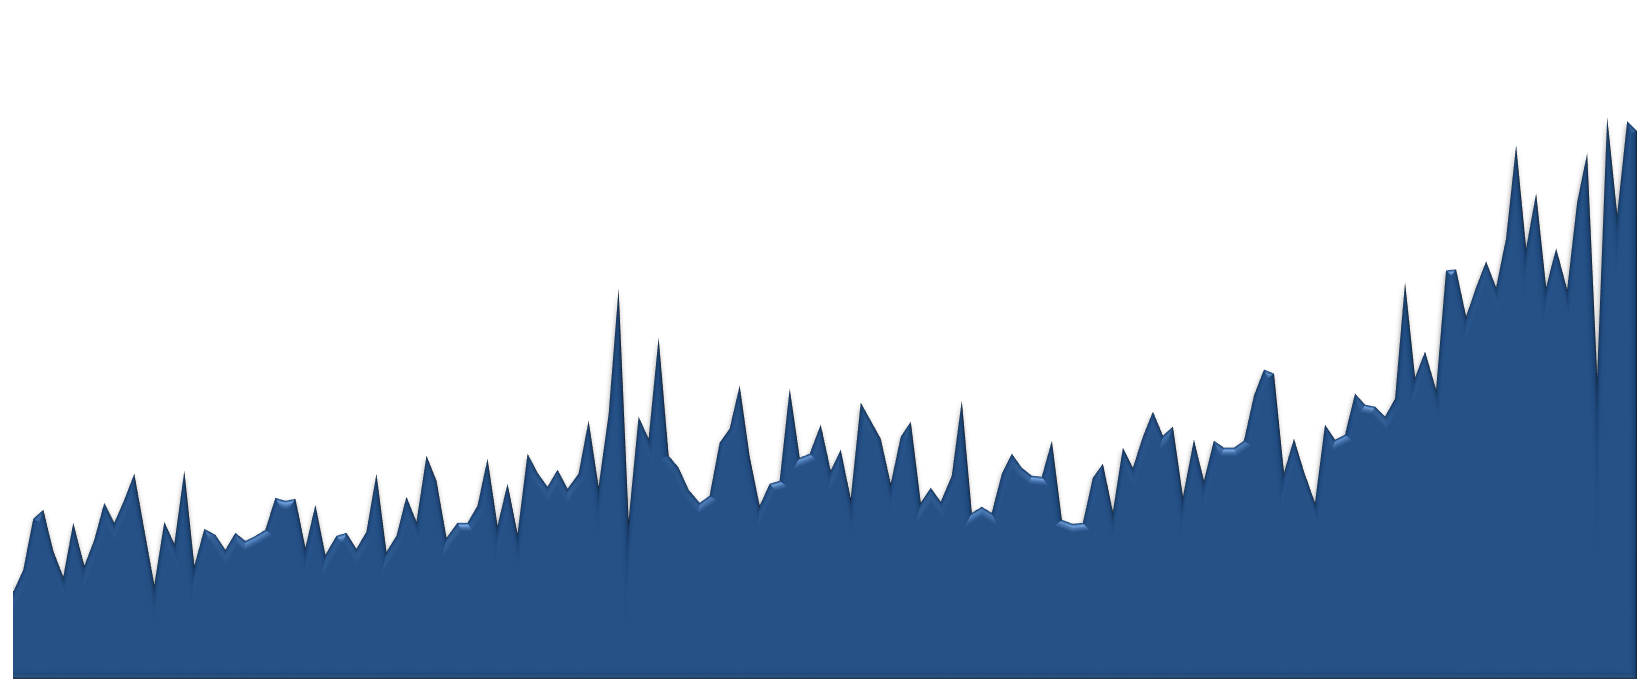 85262 Median Sales Price 2009-2013 Monthly Chart